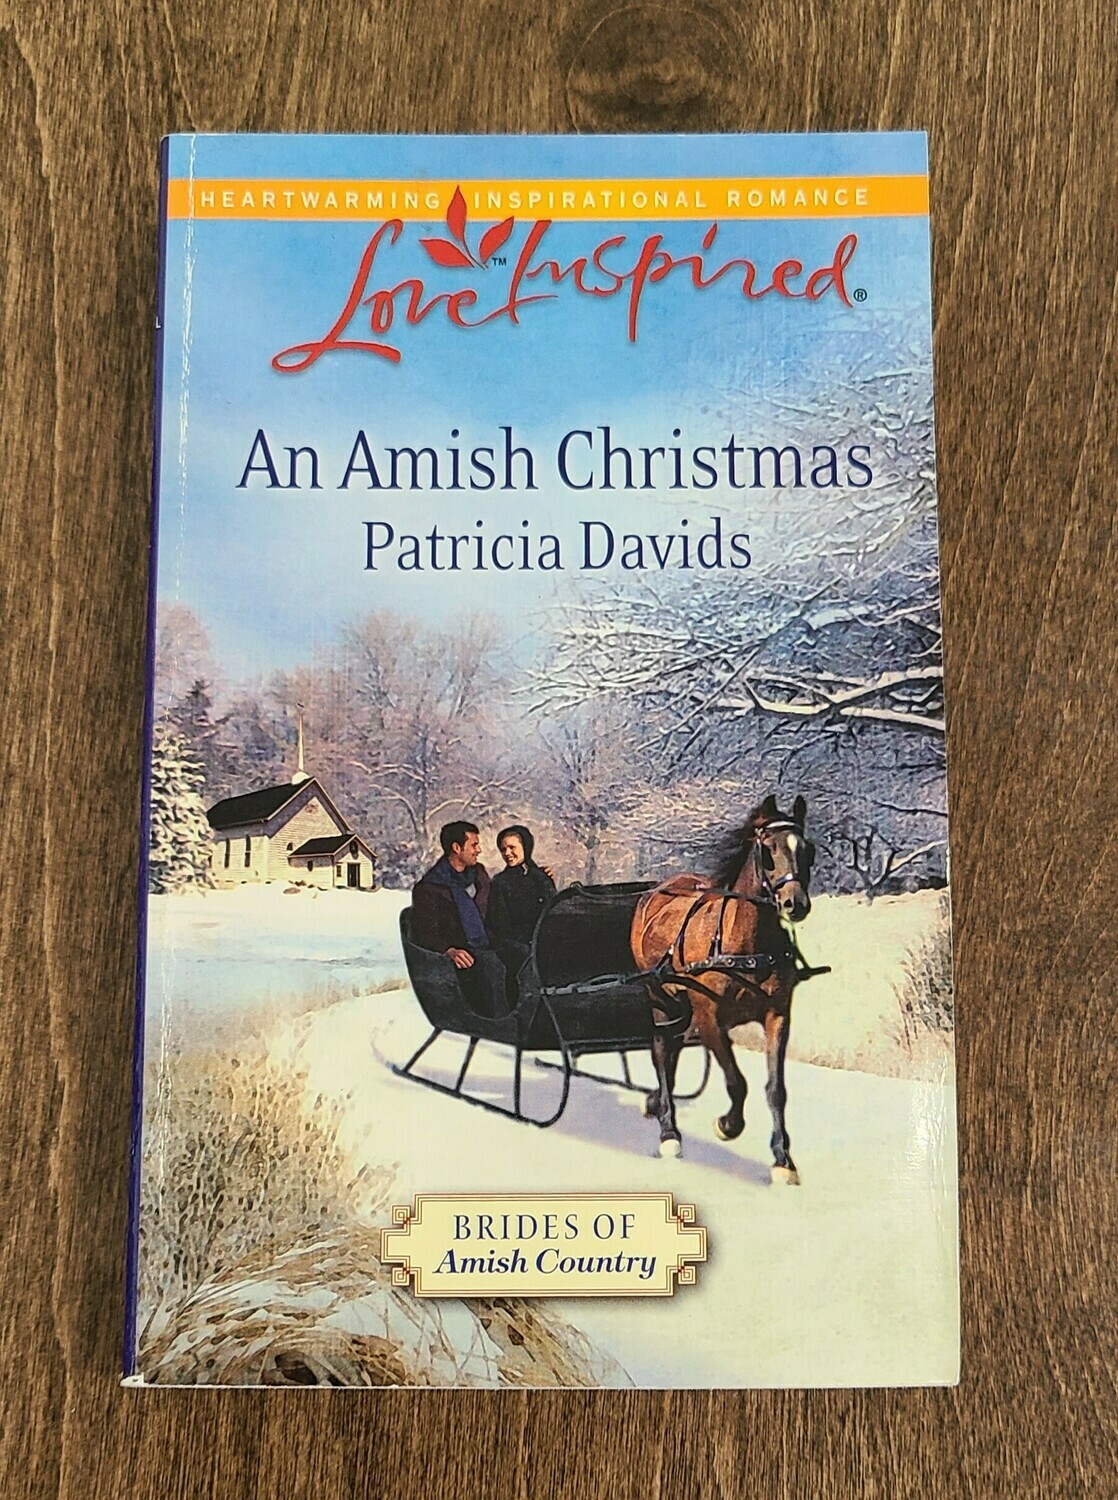 An Amish Christmas by Patricia Davids